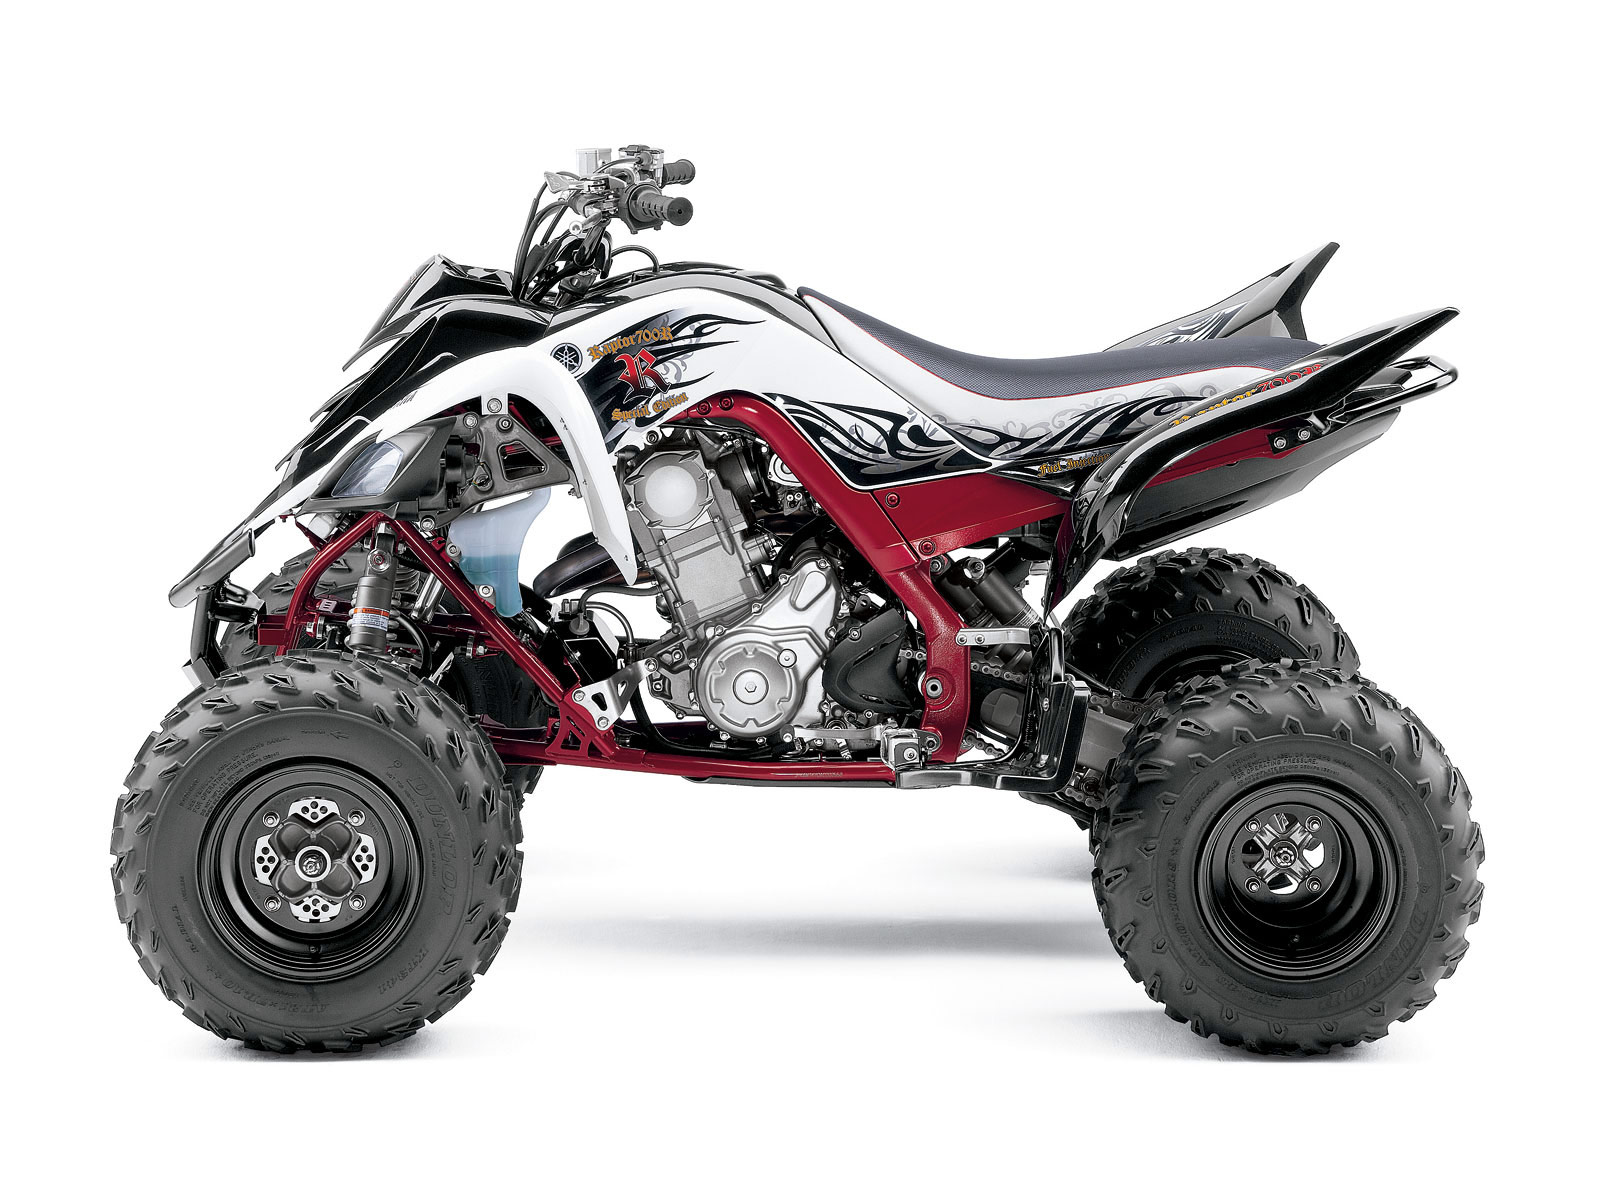 2010 yamaha raptor 700r se atv wallpapers